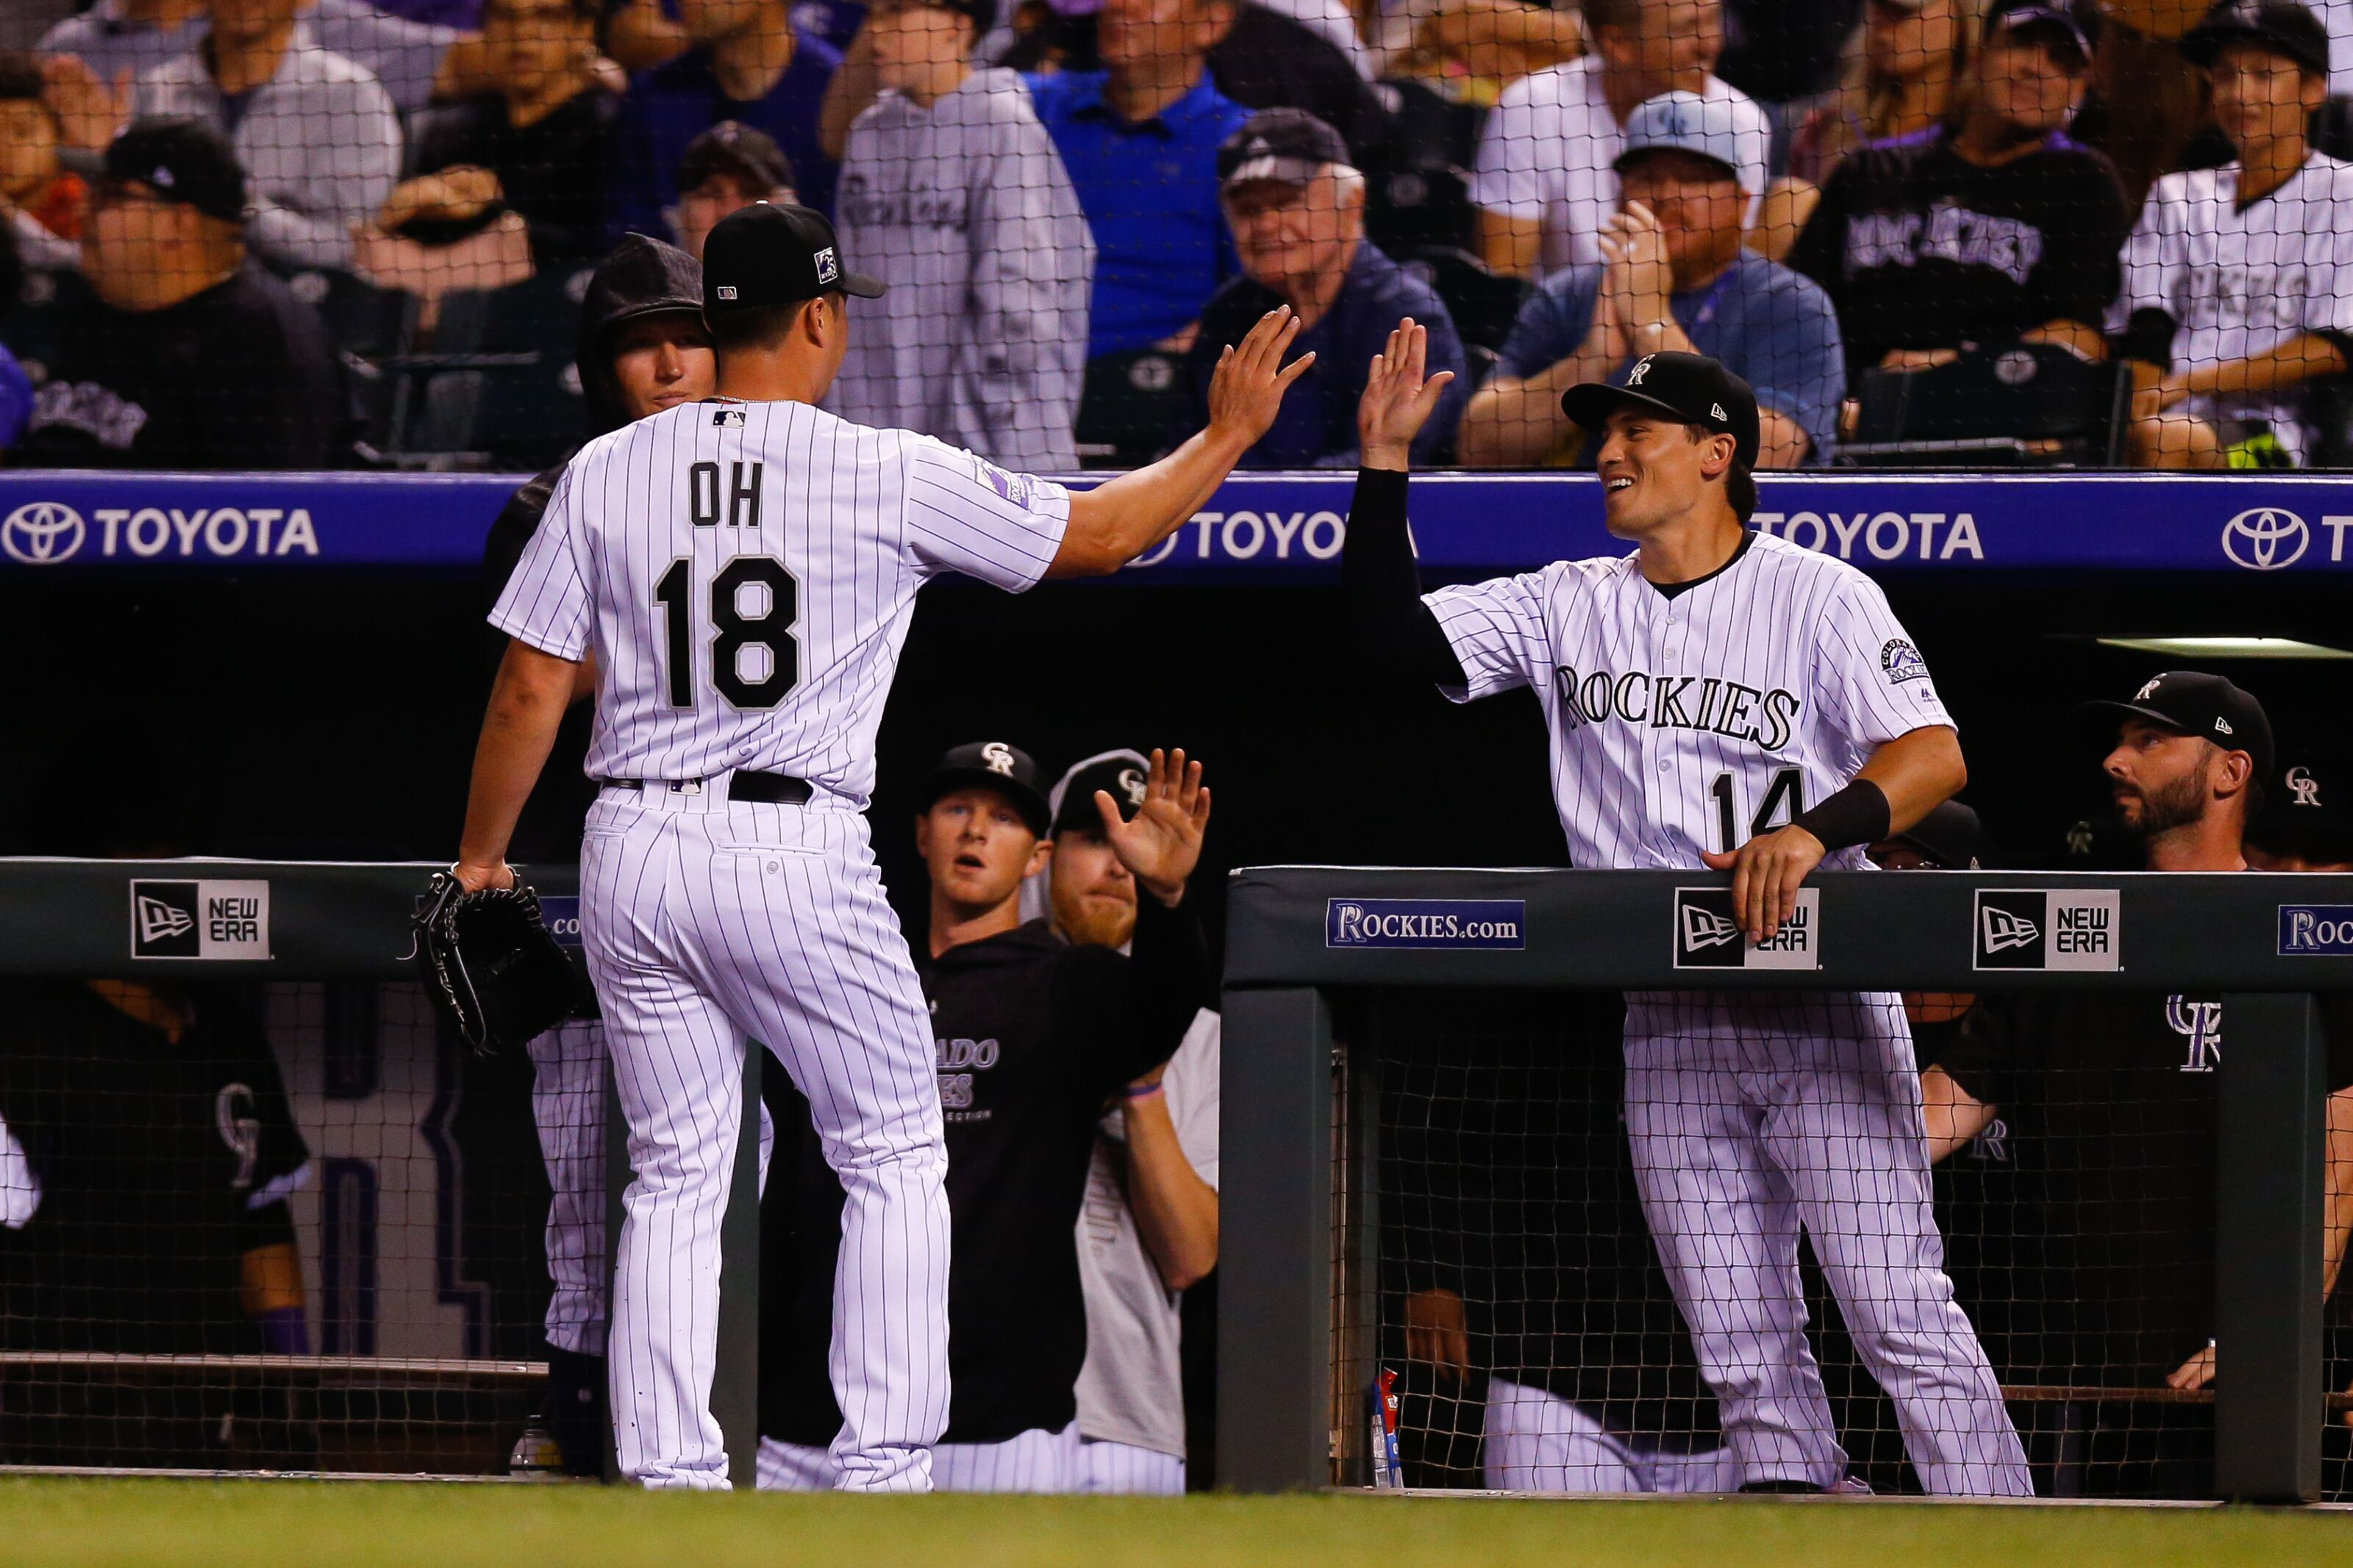 bde3c5ae5 Colorado Rockies Seunghwan Oh has hilarious message on jersey